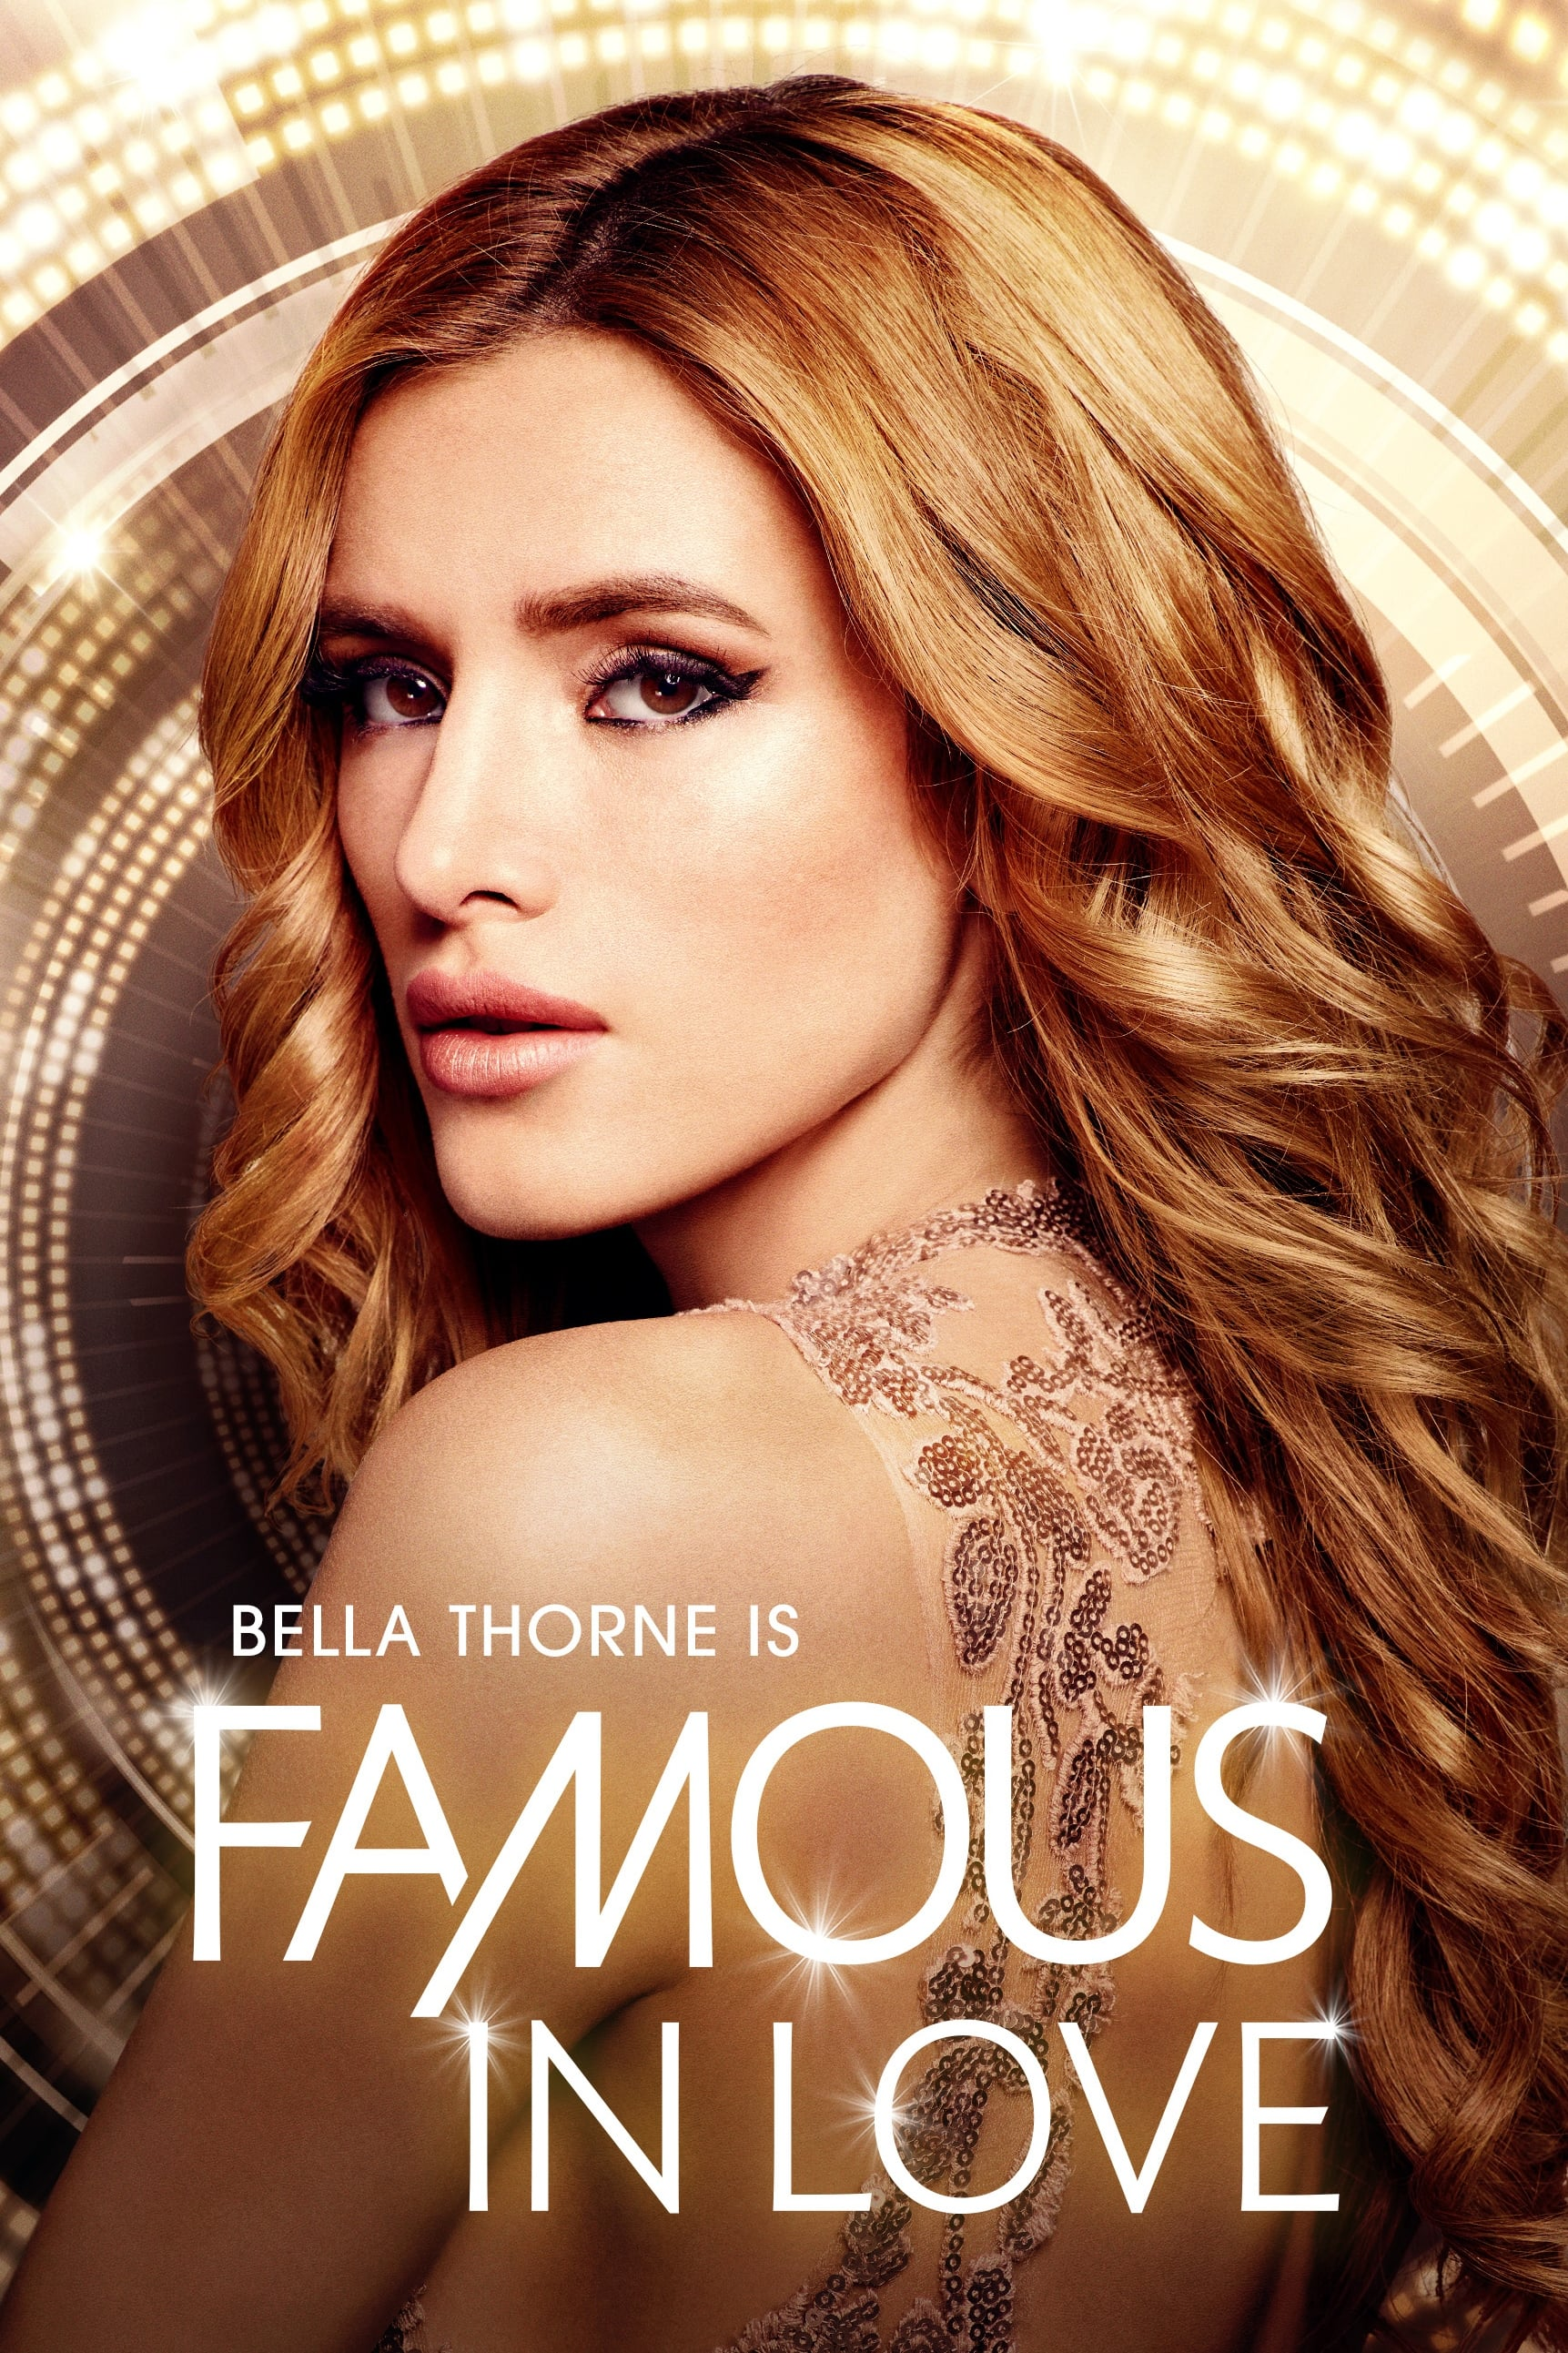 FAMOUS IN LOVE SEASON 1 putlocker 4k